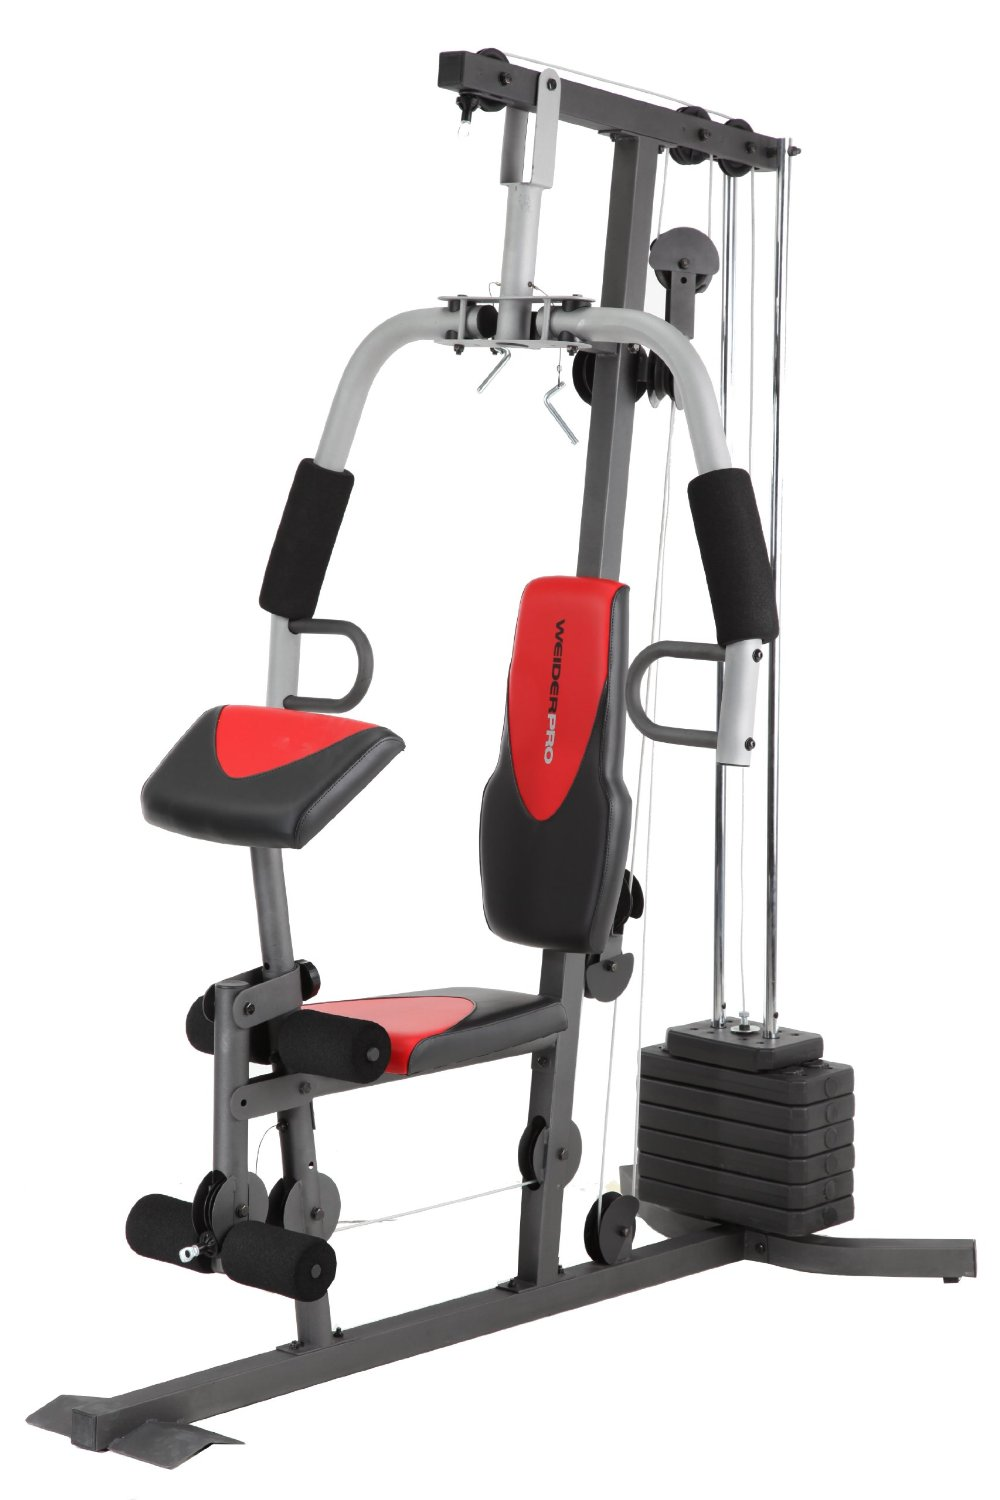 Make weider your home weider home gym reviews